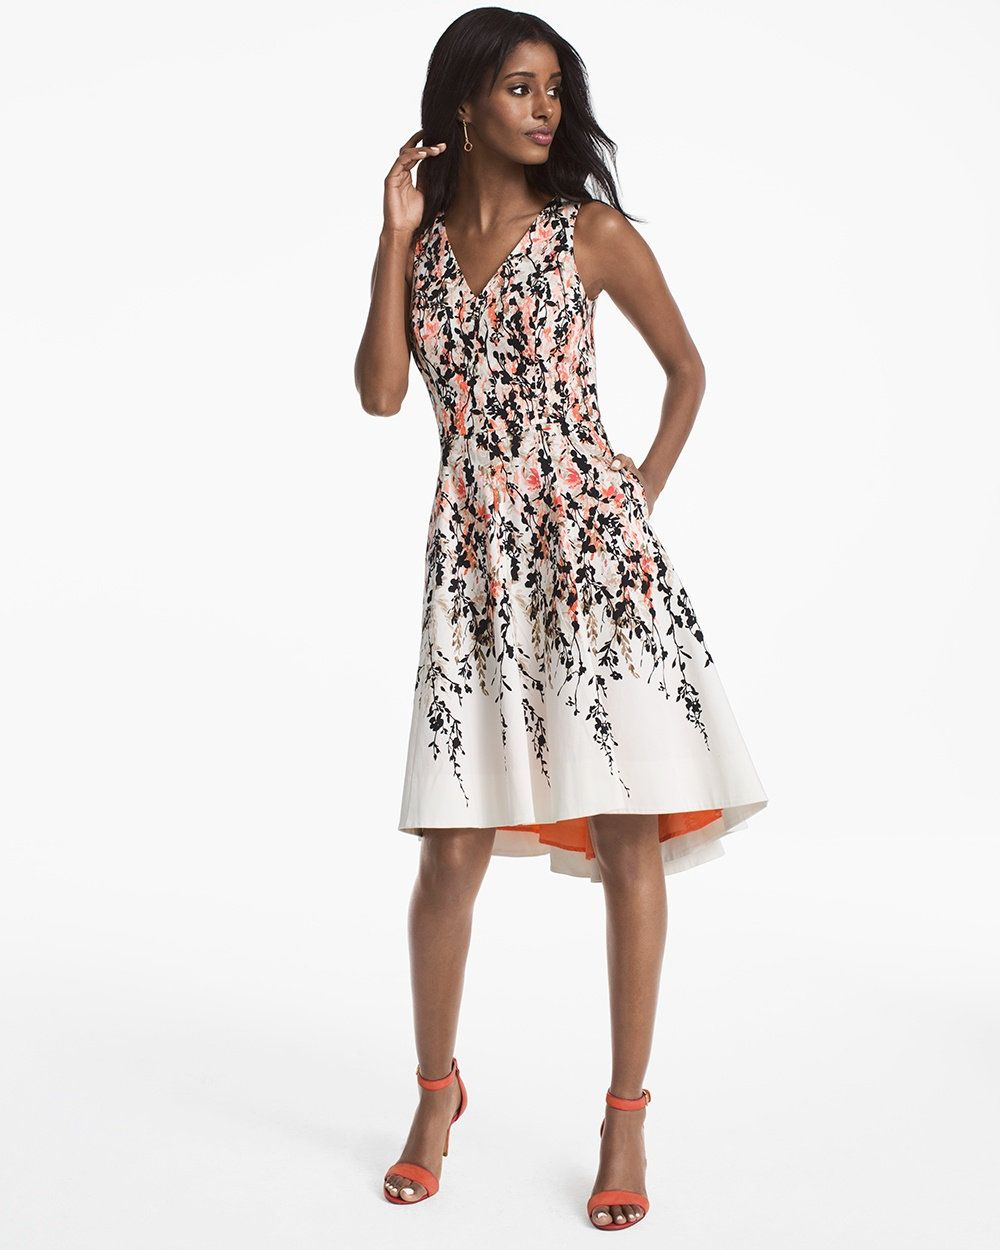 Floral printed hilo fit and flare dress style formal semi